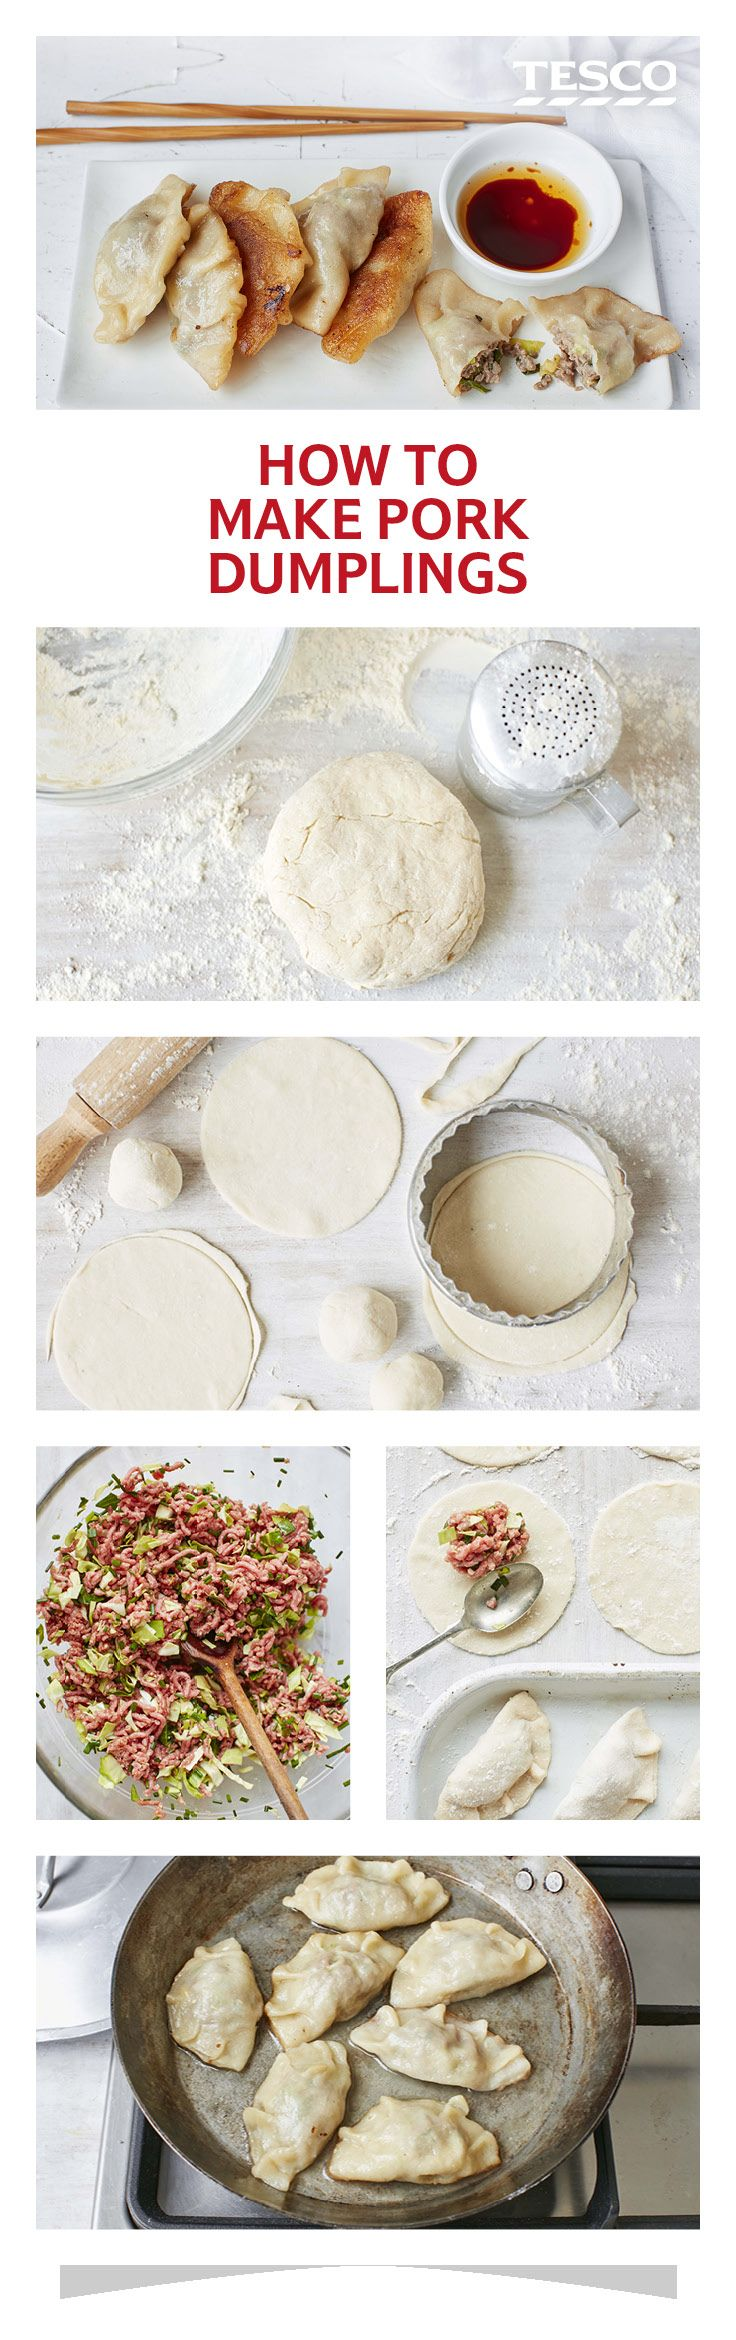 Easy to follow recipes online